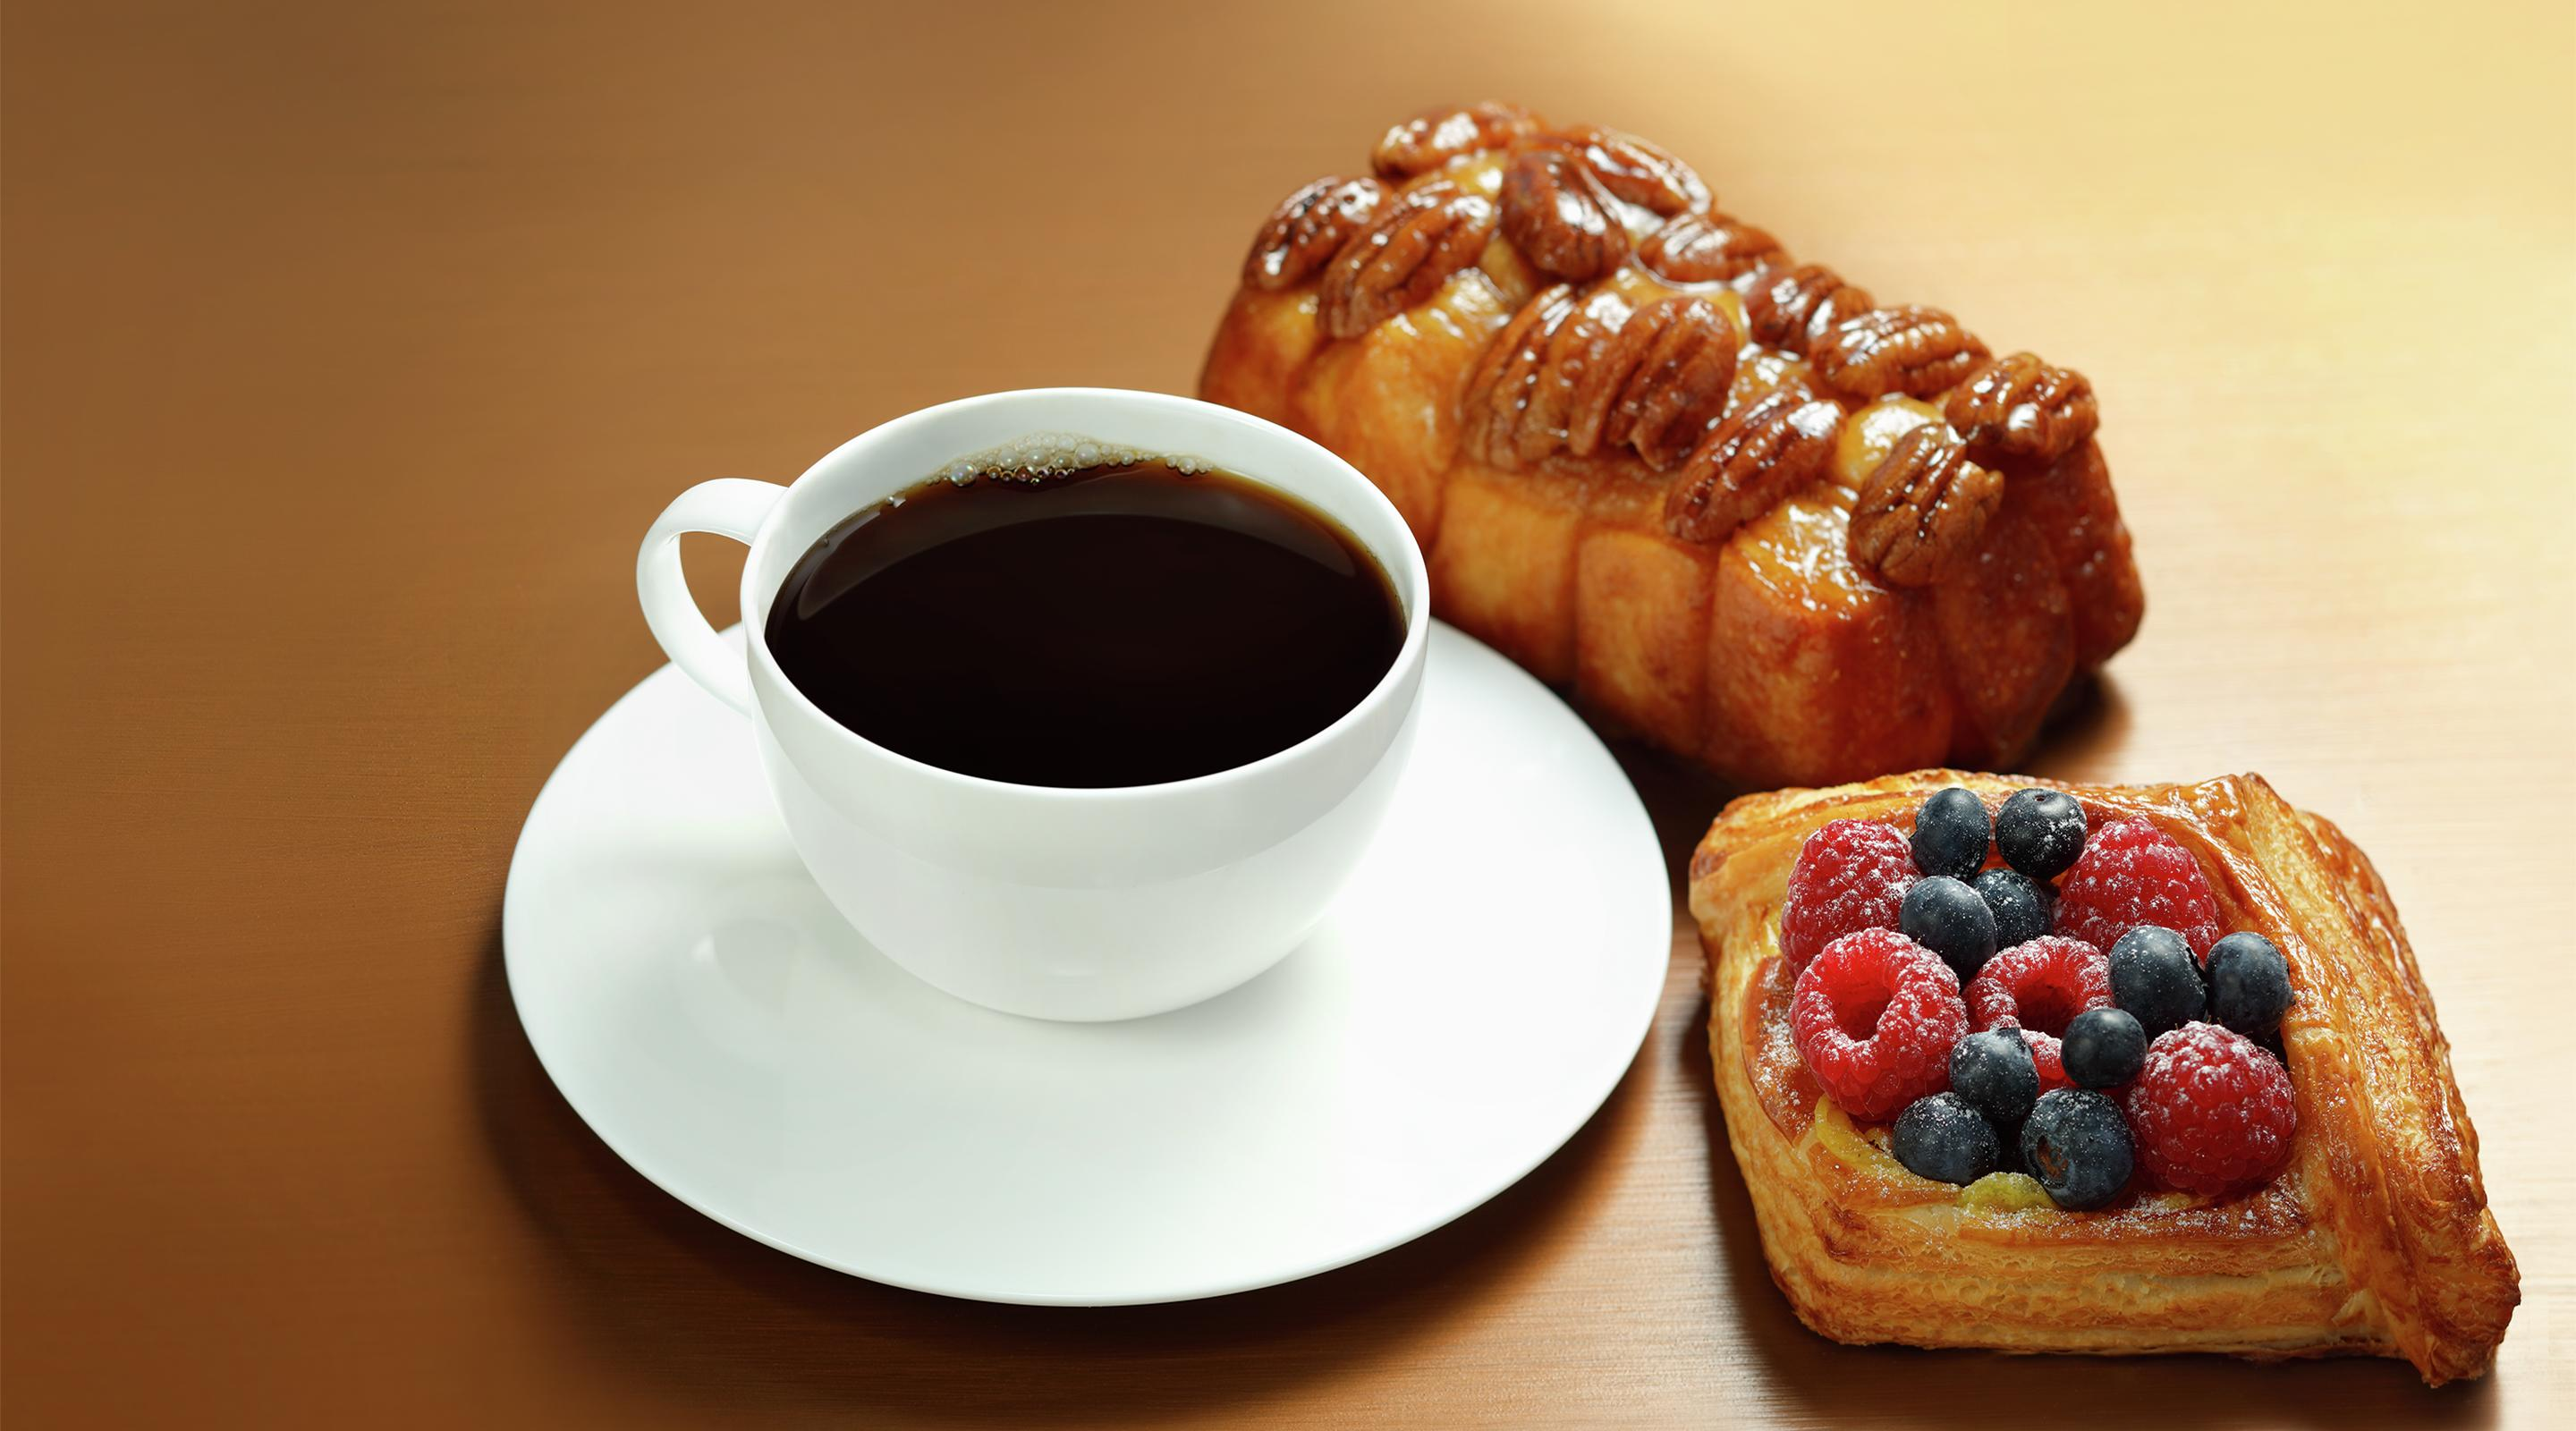 Classic breakfast items include coffee and fresh pastries.